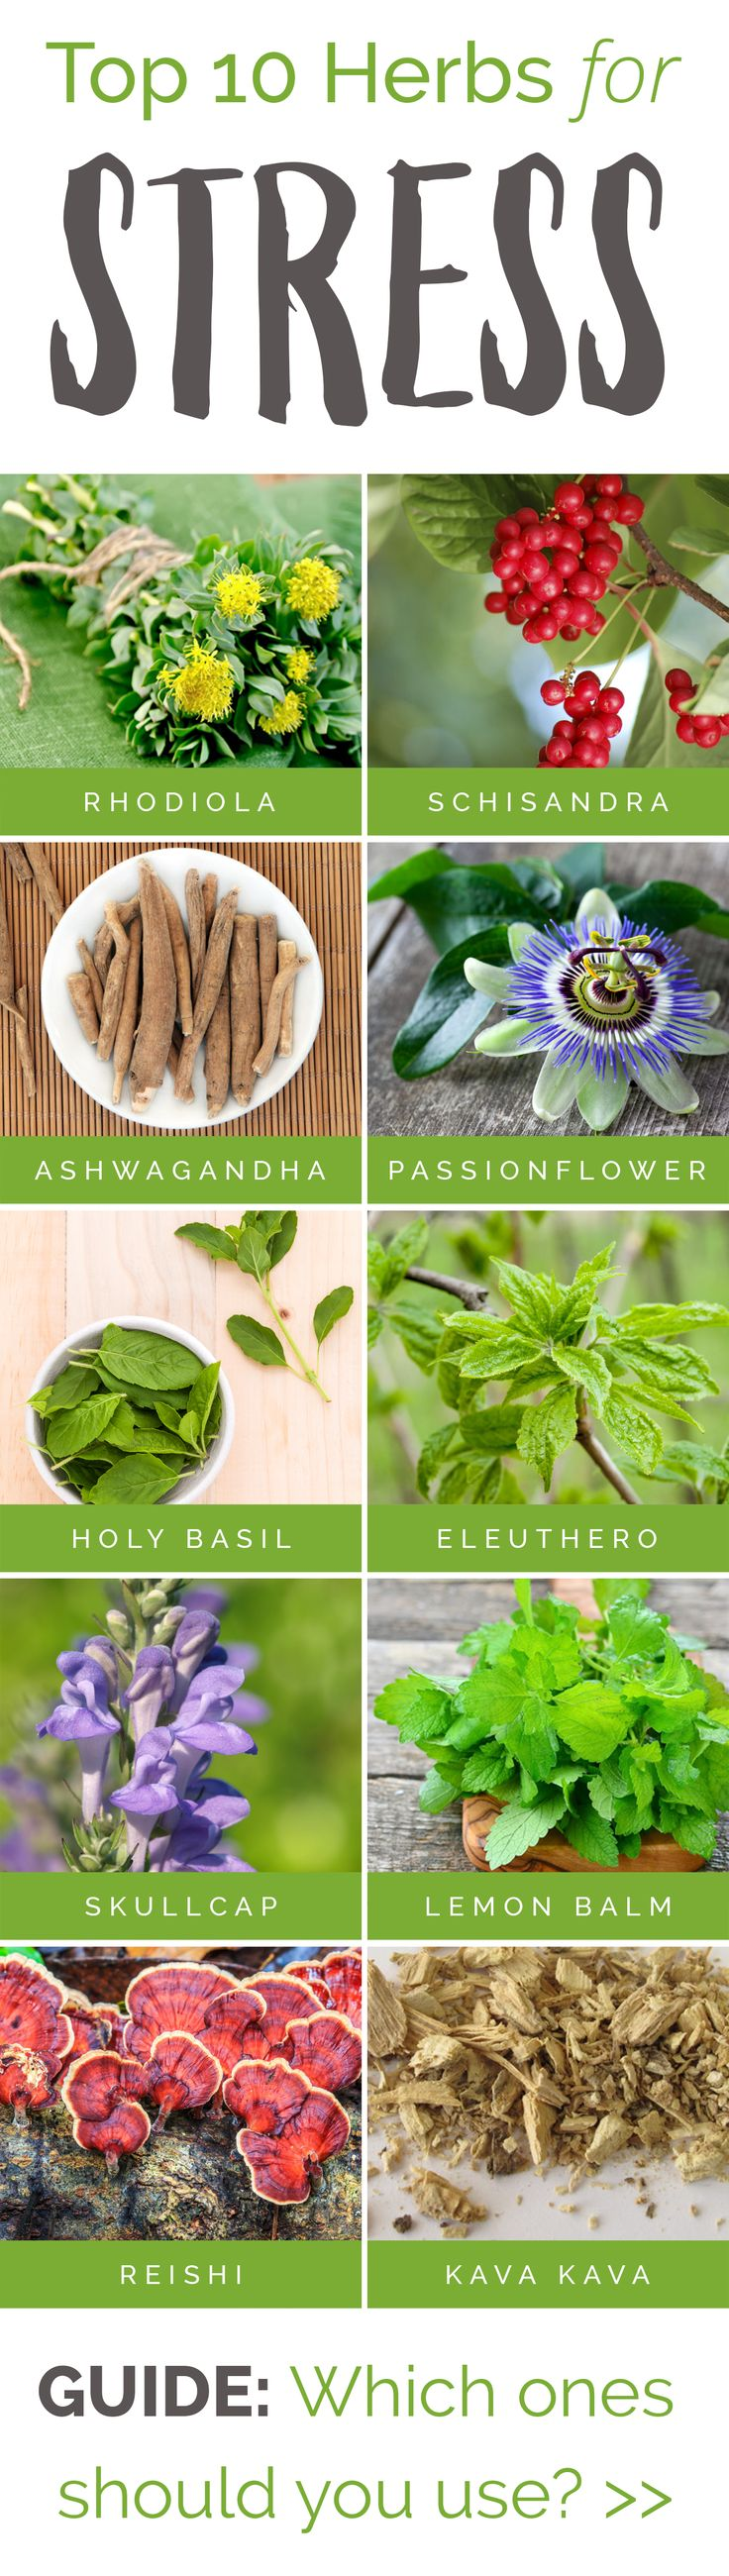 The Top 10 Herbs for STRESS... which ones should you use? http://blog.stresscompany.com/top-10-herbs-for-natural-stress-relief/